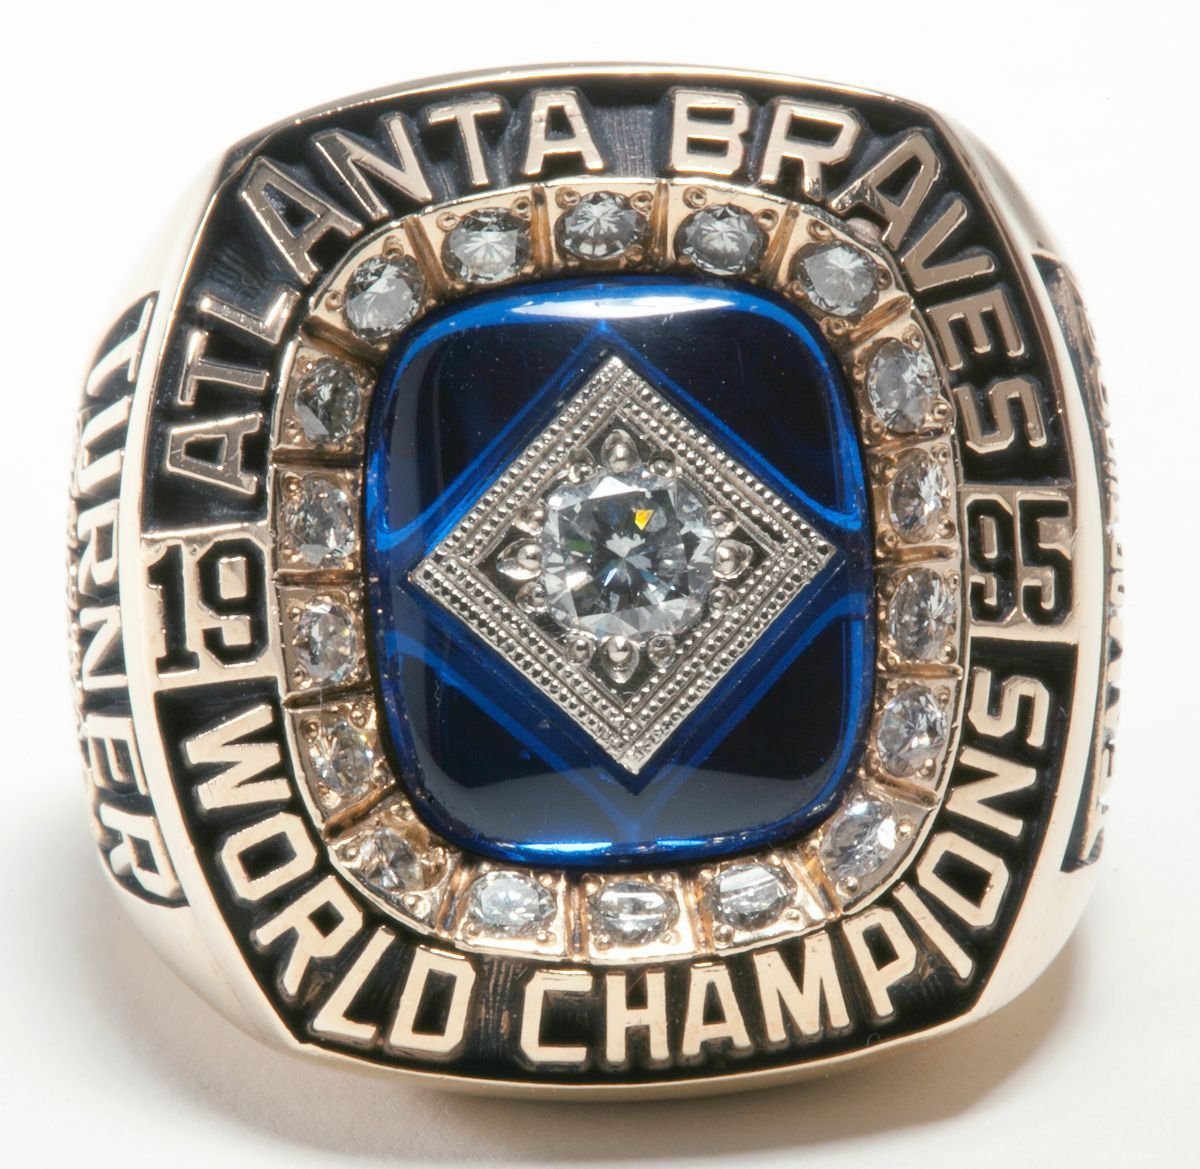 Atlanta Braves 1995 World Series Mlb Championship Ring 18k Gold Plating With Synthetic Sapphire Atlanta Braves Braves Atlanta Braves Baseball